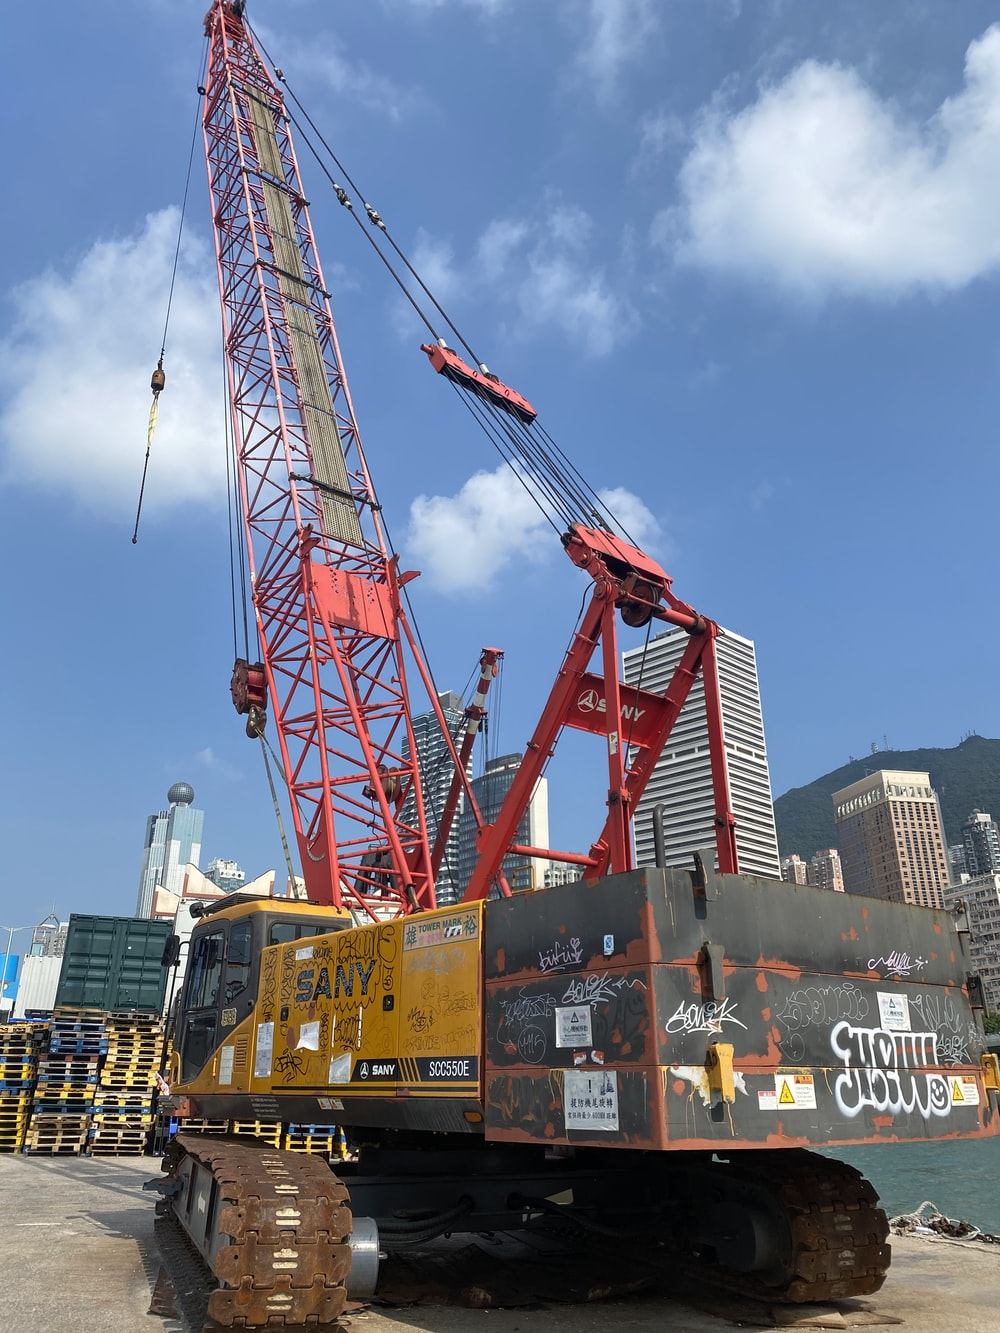 red and yellow crane near buildings during daytime